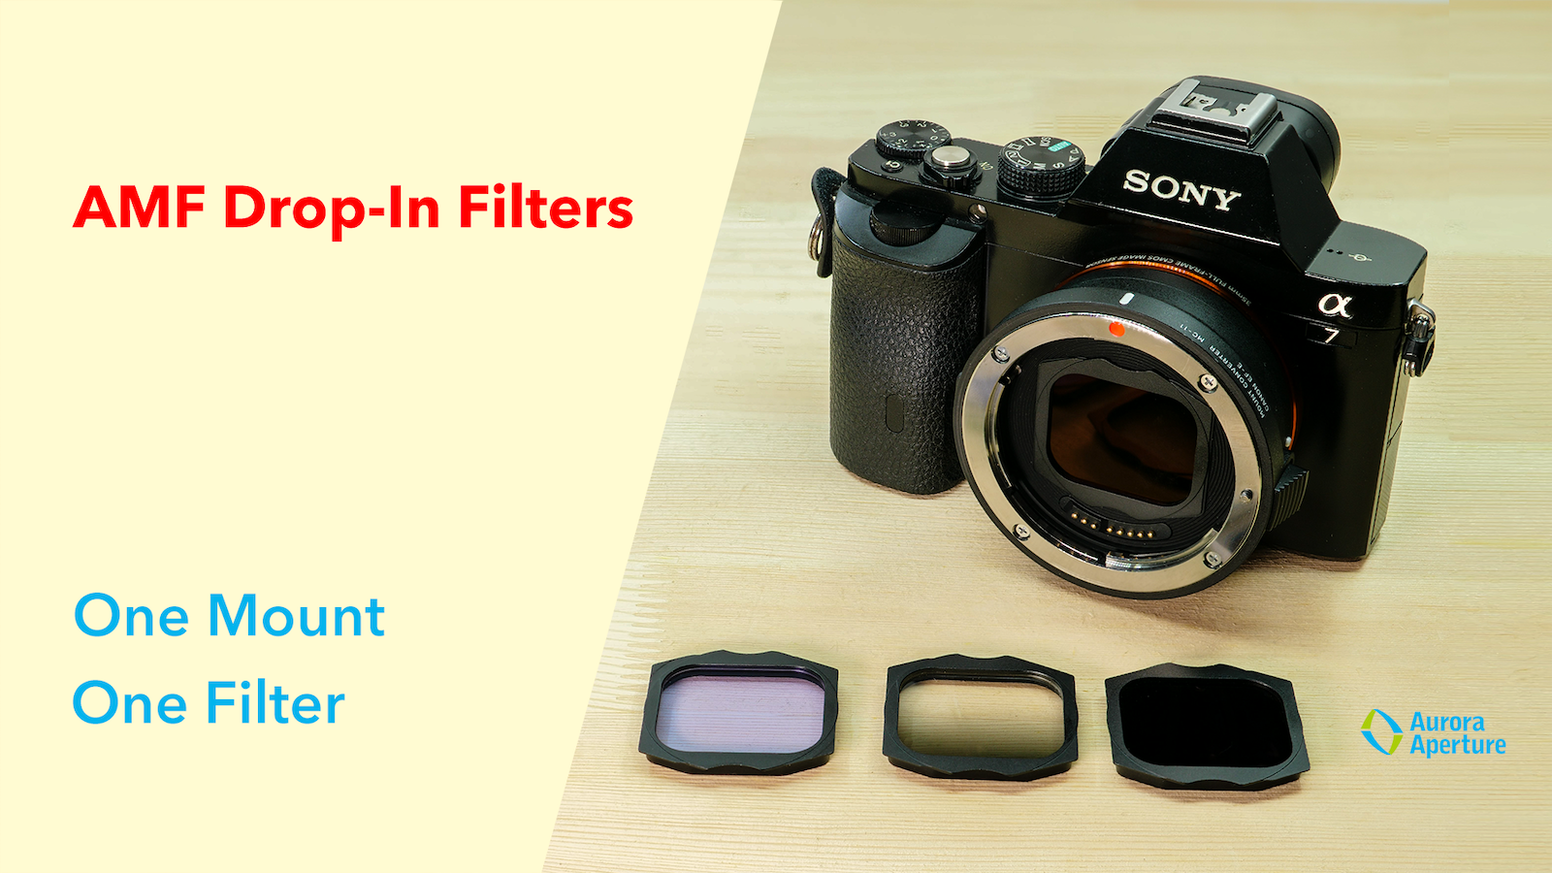 One Set of Filters for All Your Lenses